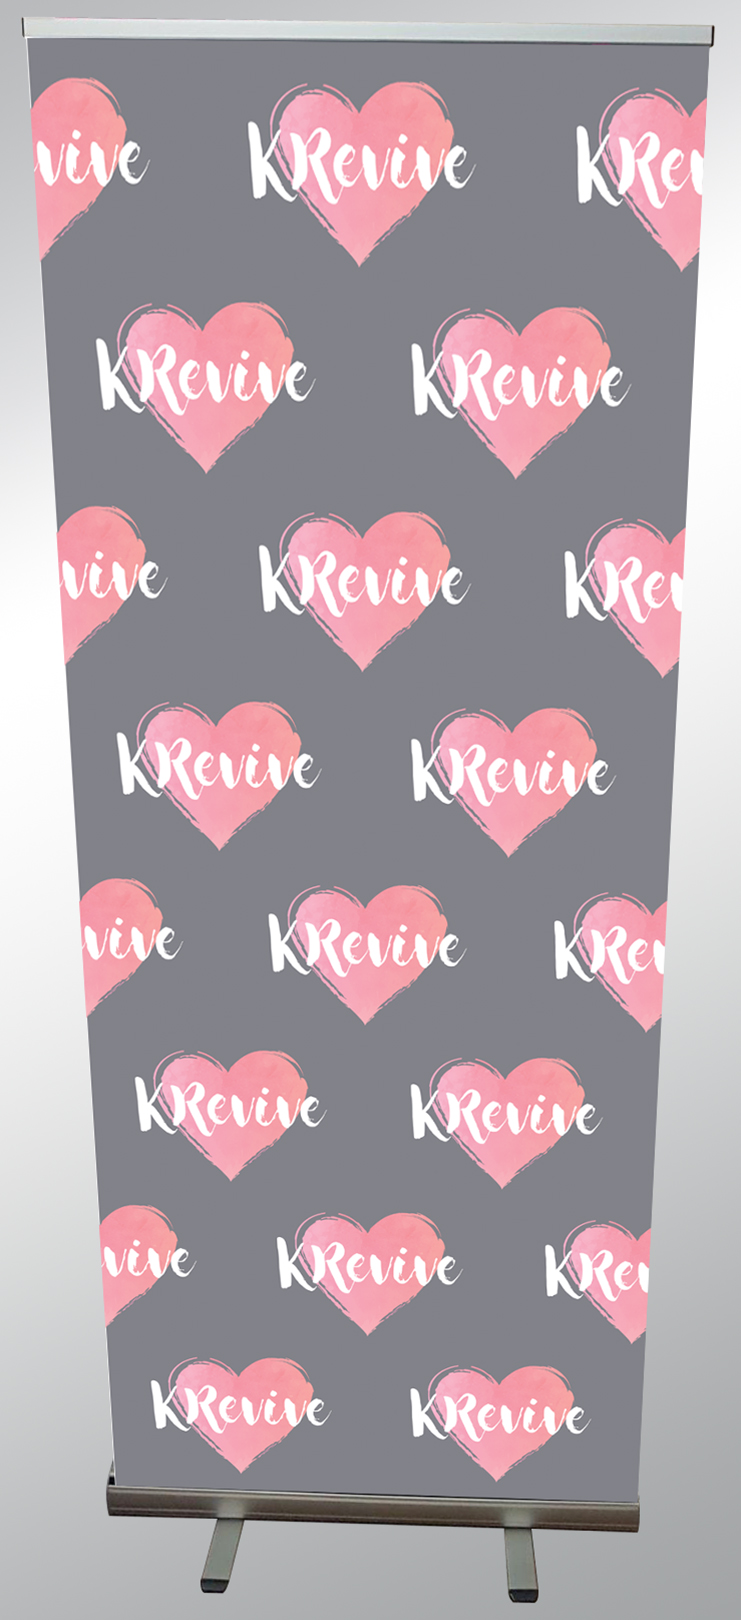 Krevive-6ft-banner-0218